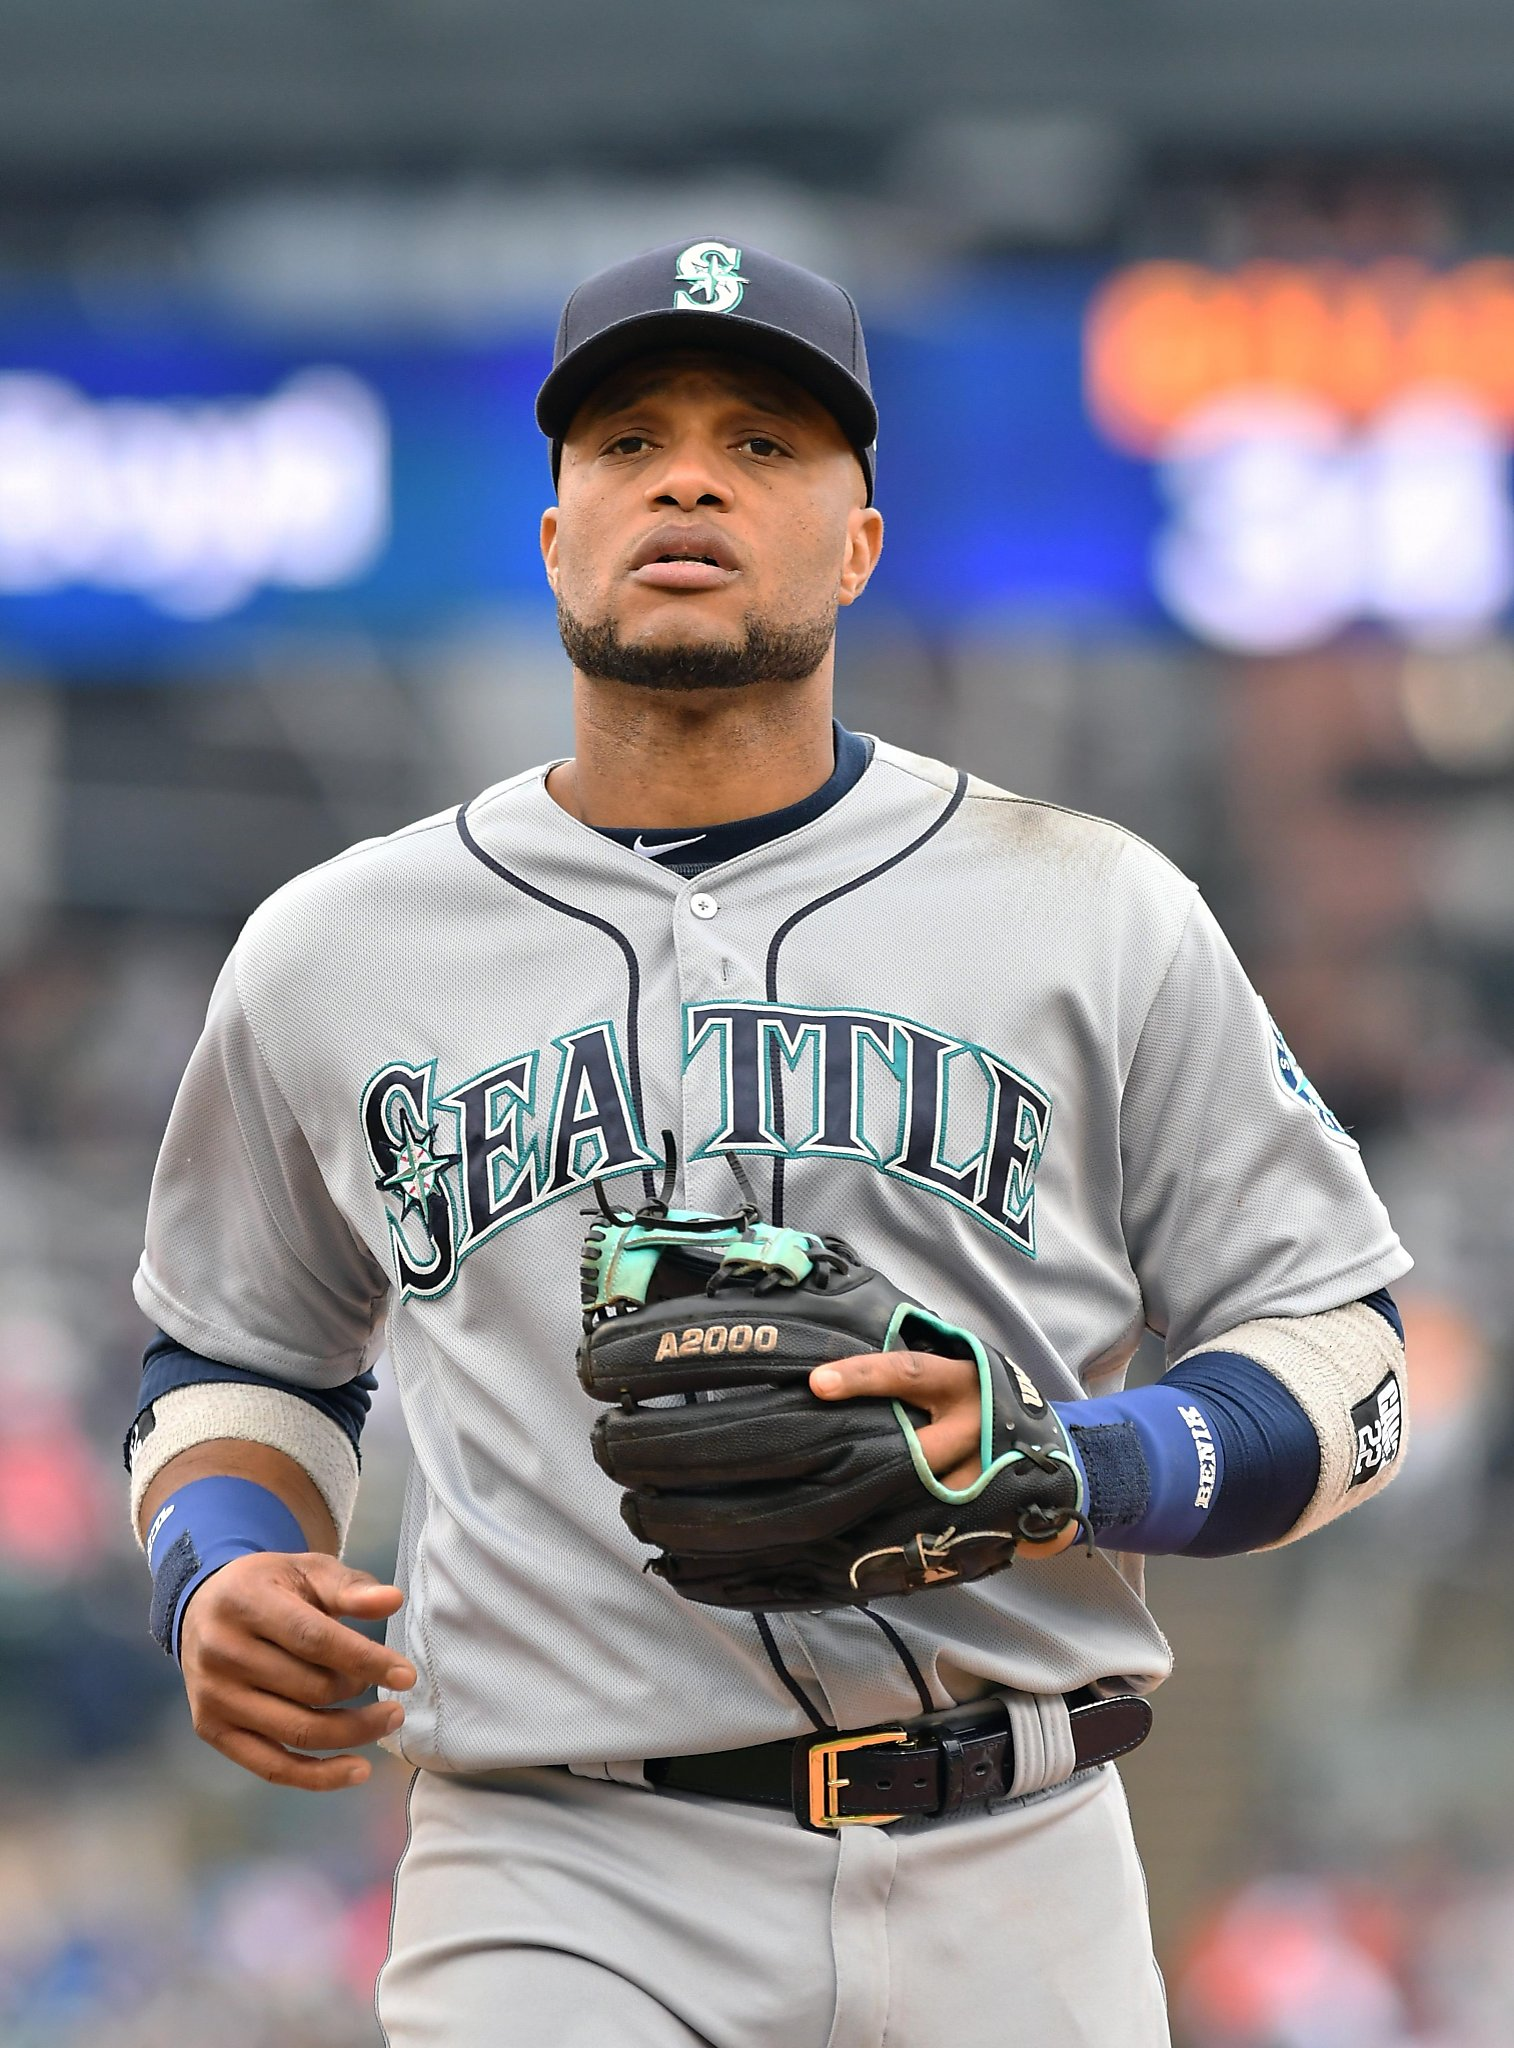 reputable site 949ab 1cc5a Officially official: Mariners complete blockbuster deal to ...